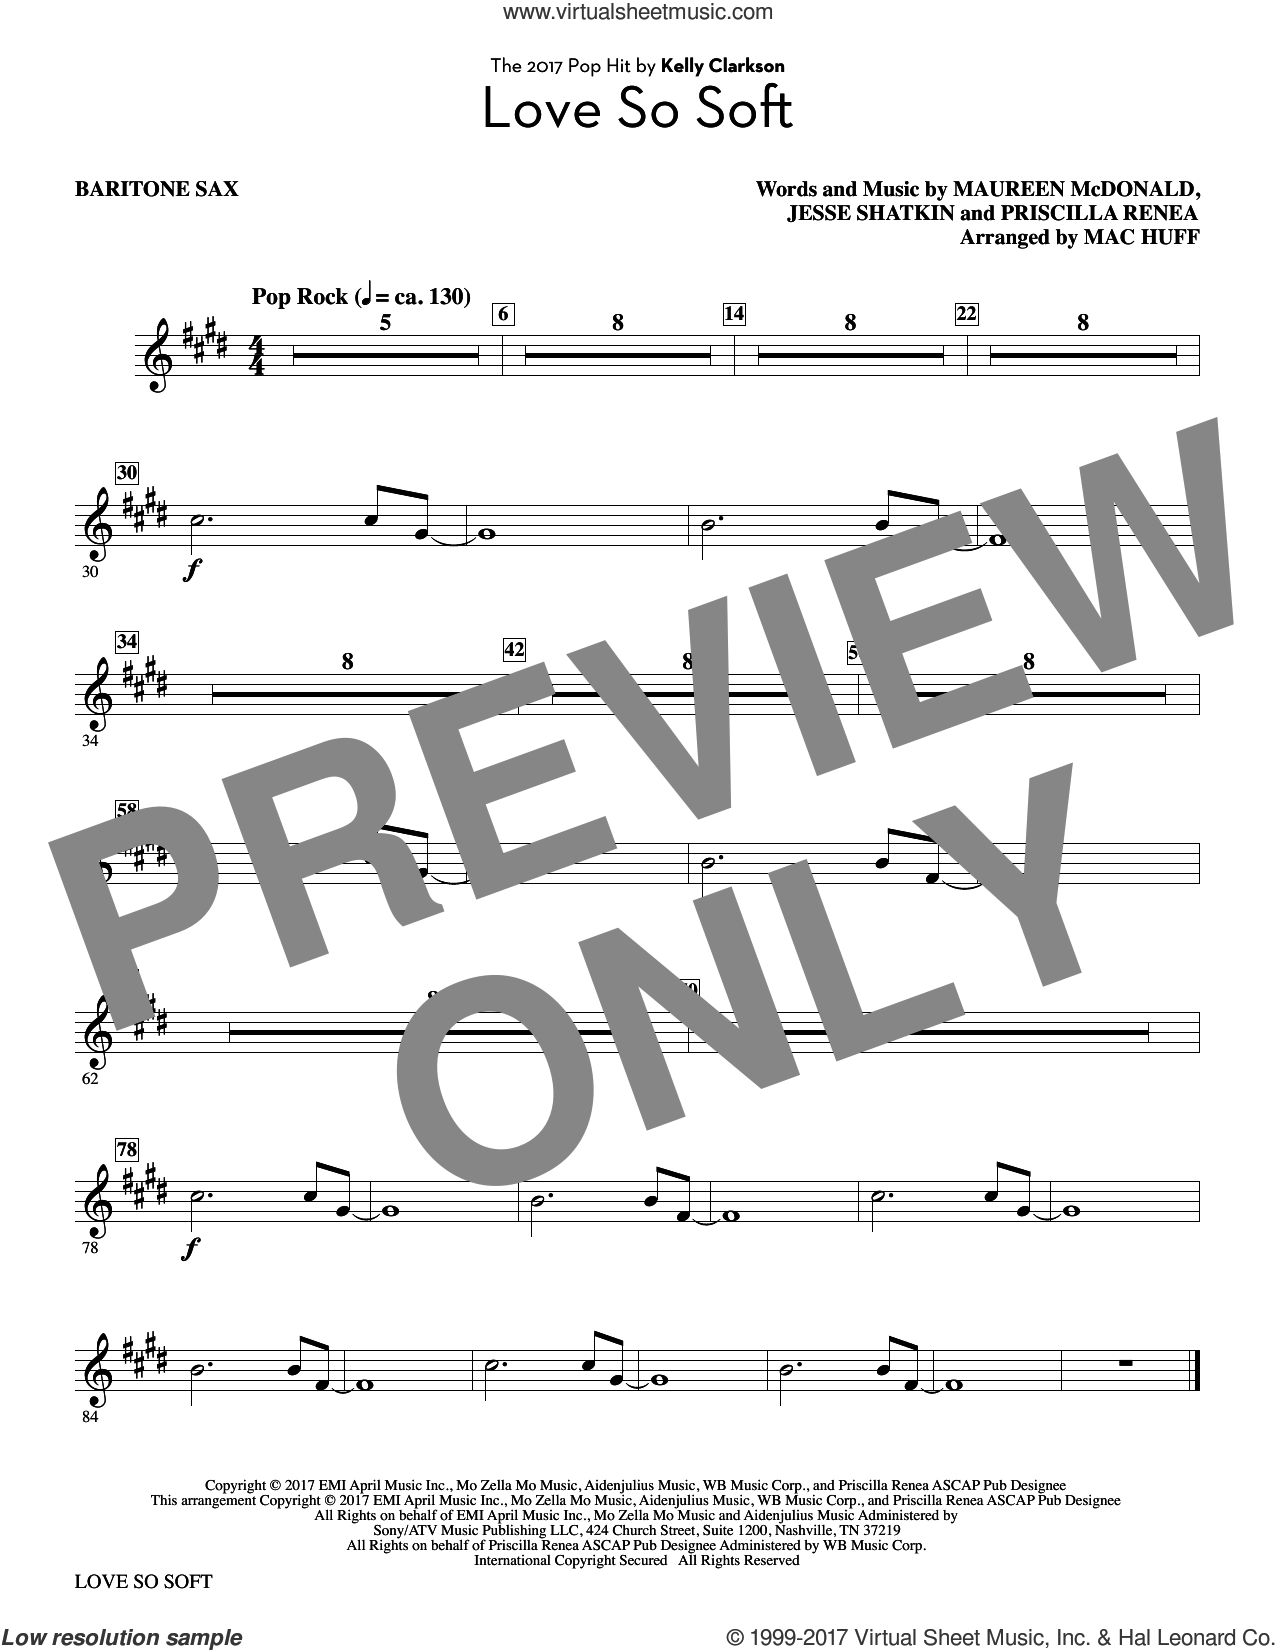 Love So Soft (complete set of parts) sheet music for orchestra/band by Mac Huff, Jesse Shatkin, Kelly Clarkson, Maureen McDonald and Priscilla Renea, intermediate skill level